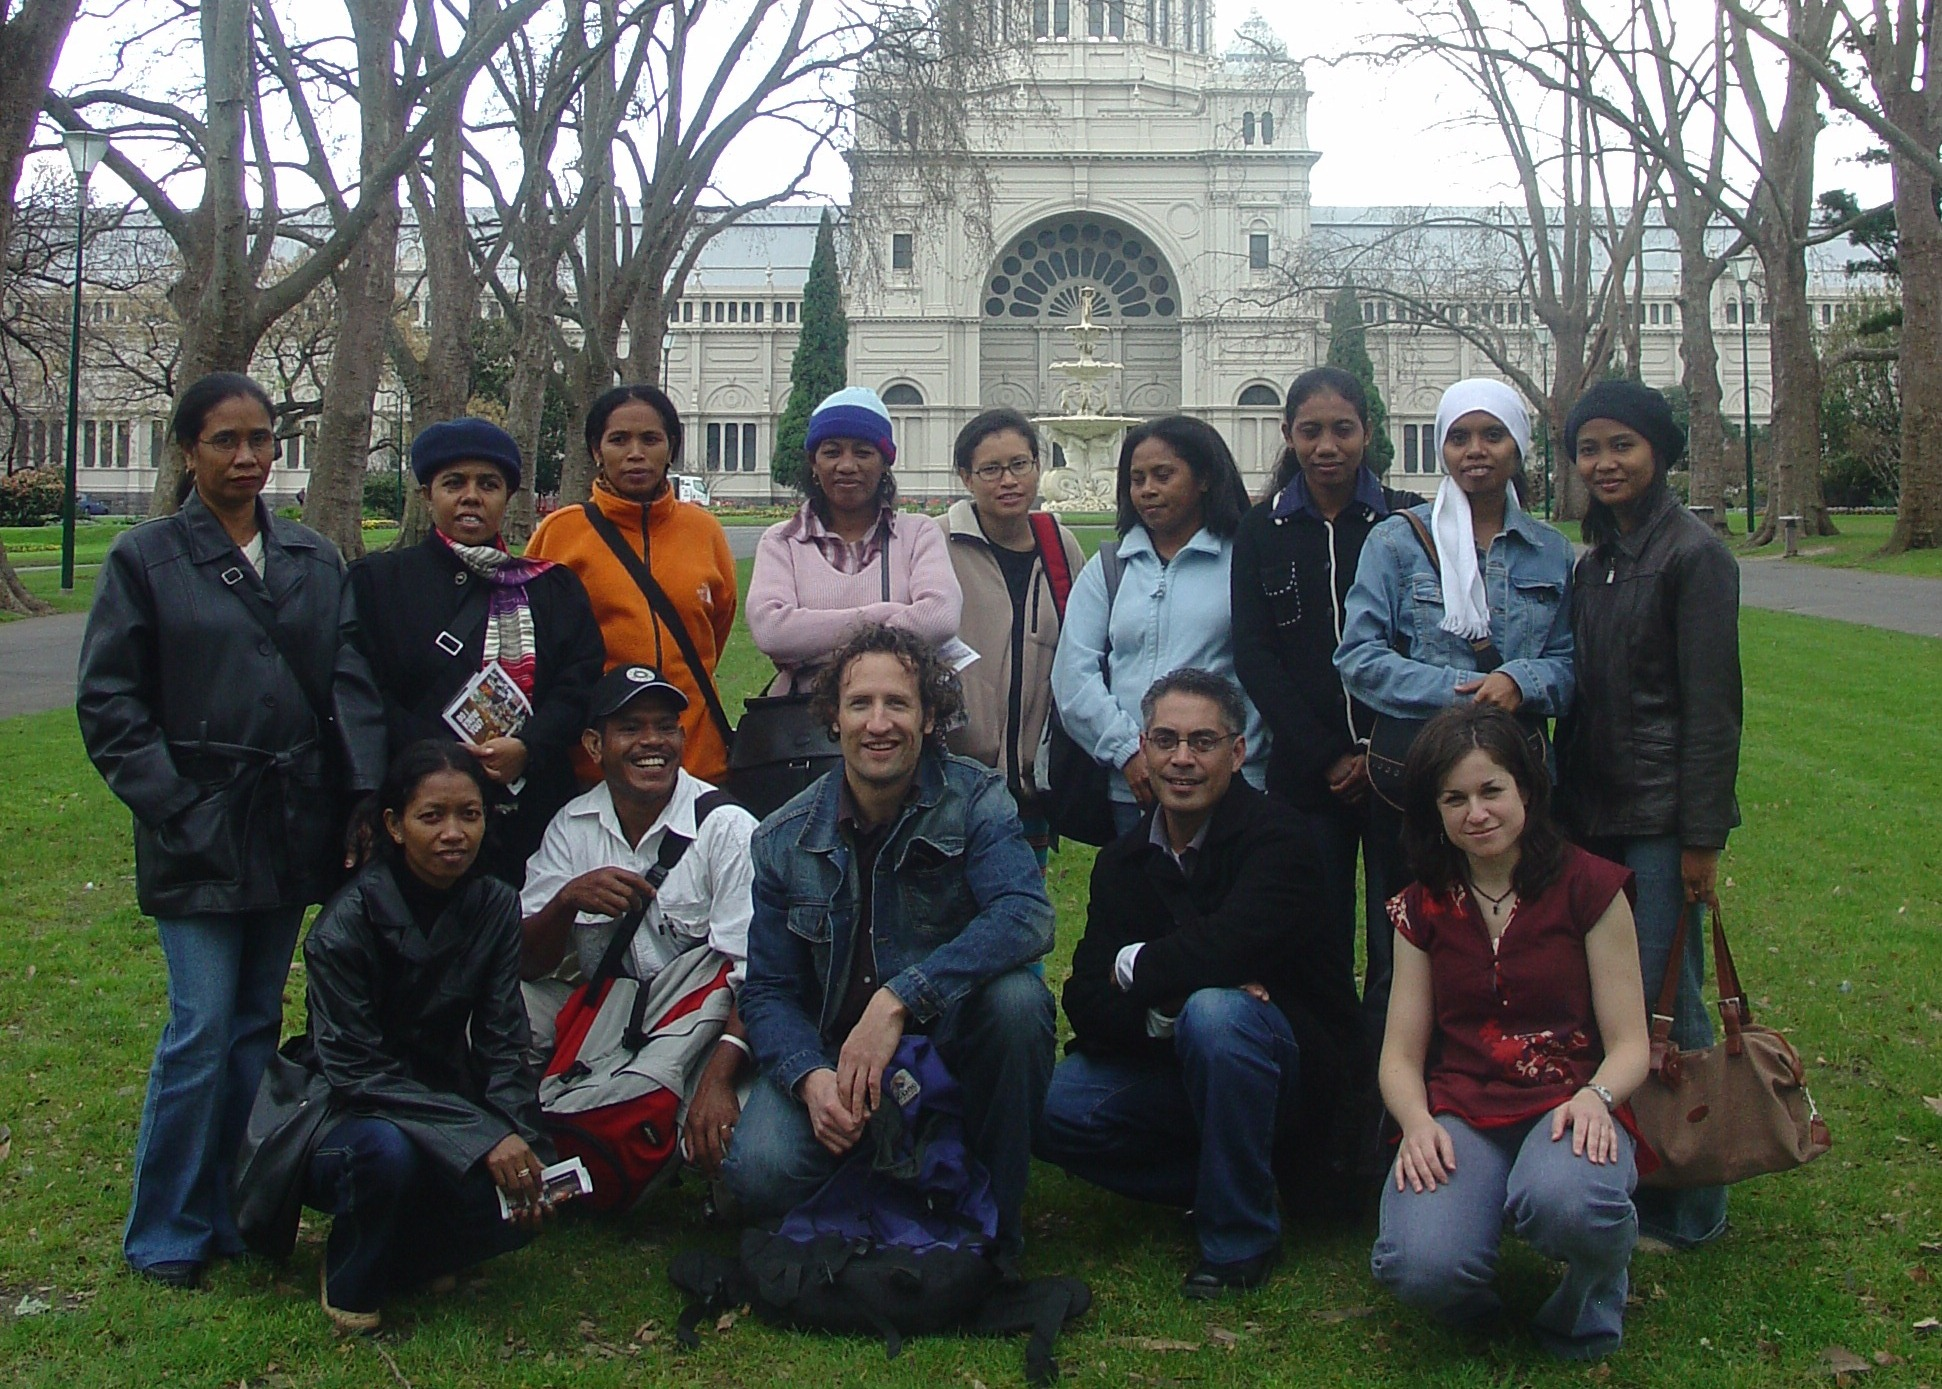 Organisers of the Challenges and Possibilities Conference at RMIT University, 2005 with some of the participants from Timor-Leste.